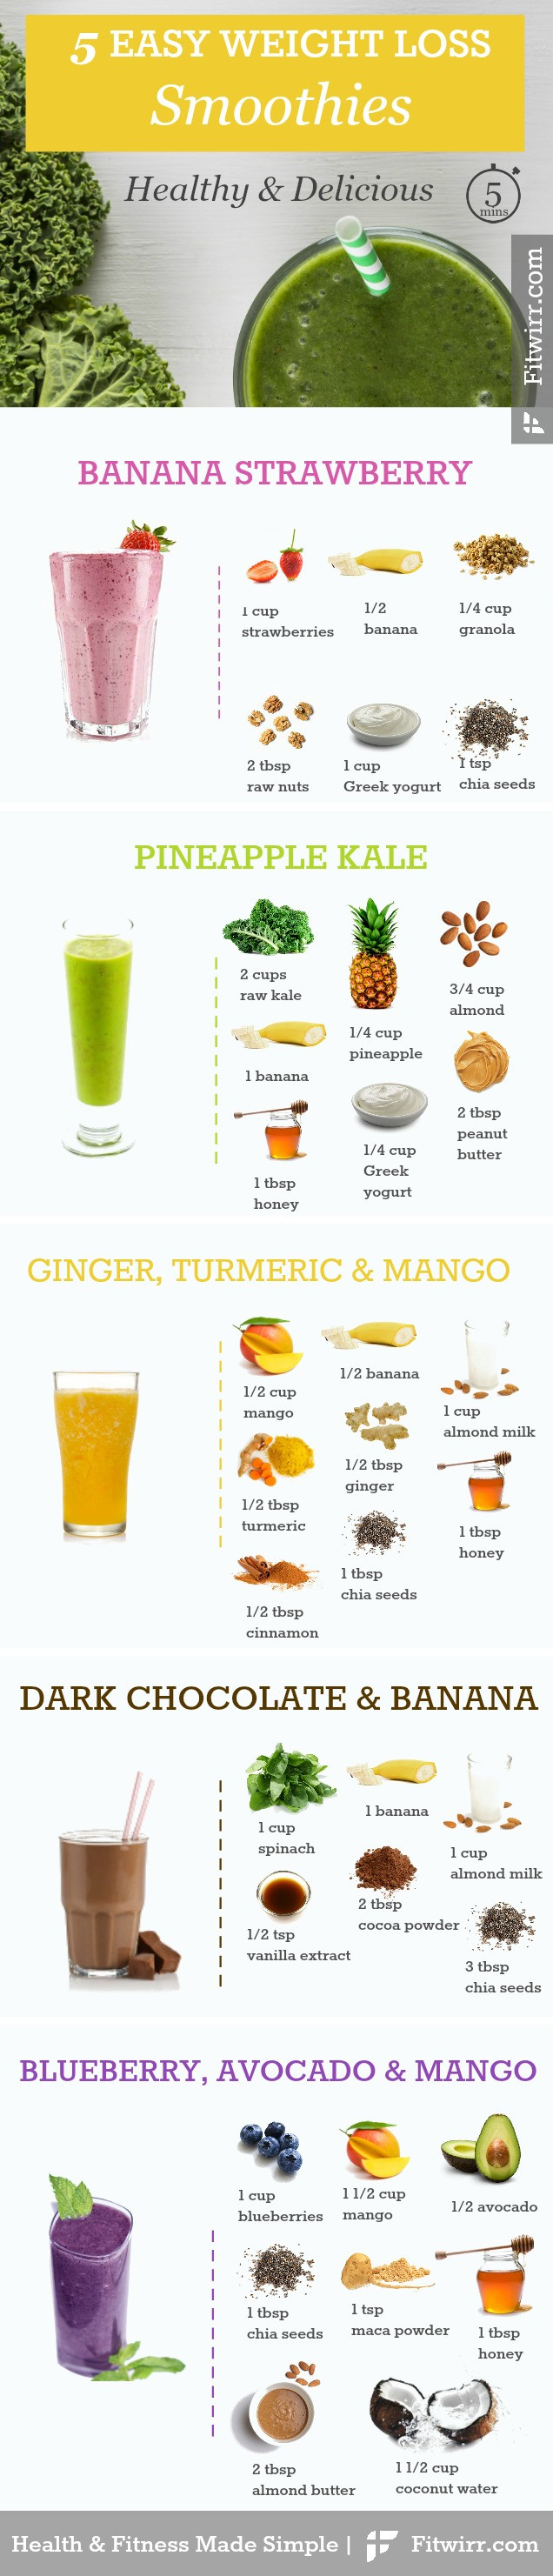 Easy Healthy Smoothie Recipes For Weight Loss  5 Best Smoothie Recipes for Weight Loss